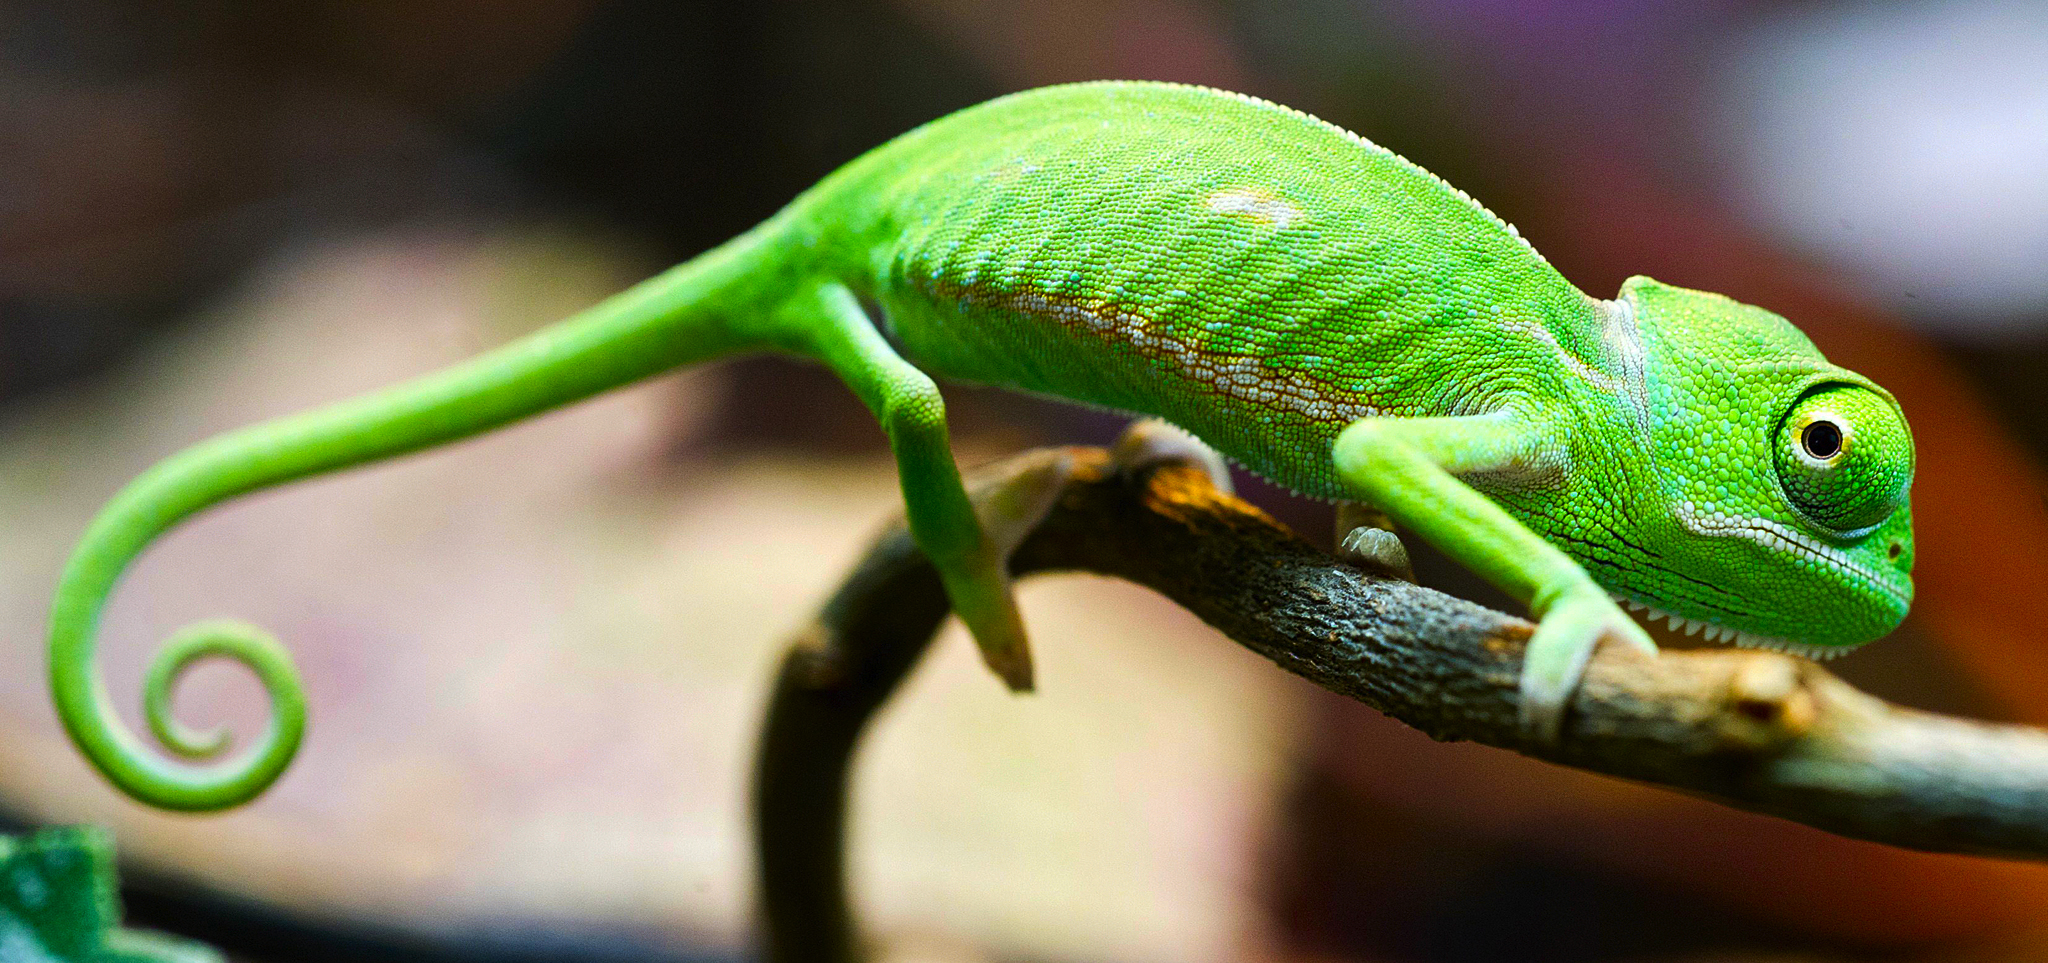 Green Chameleon on a Branch